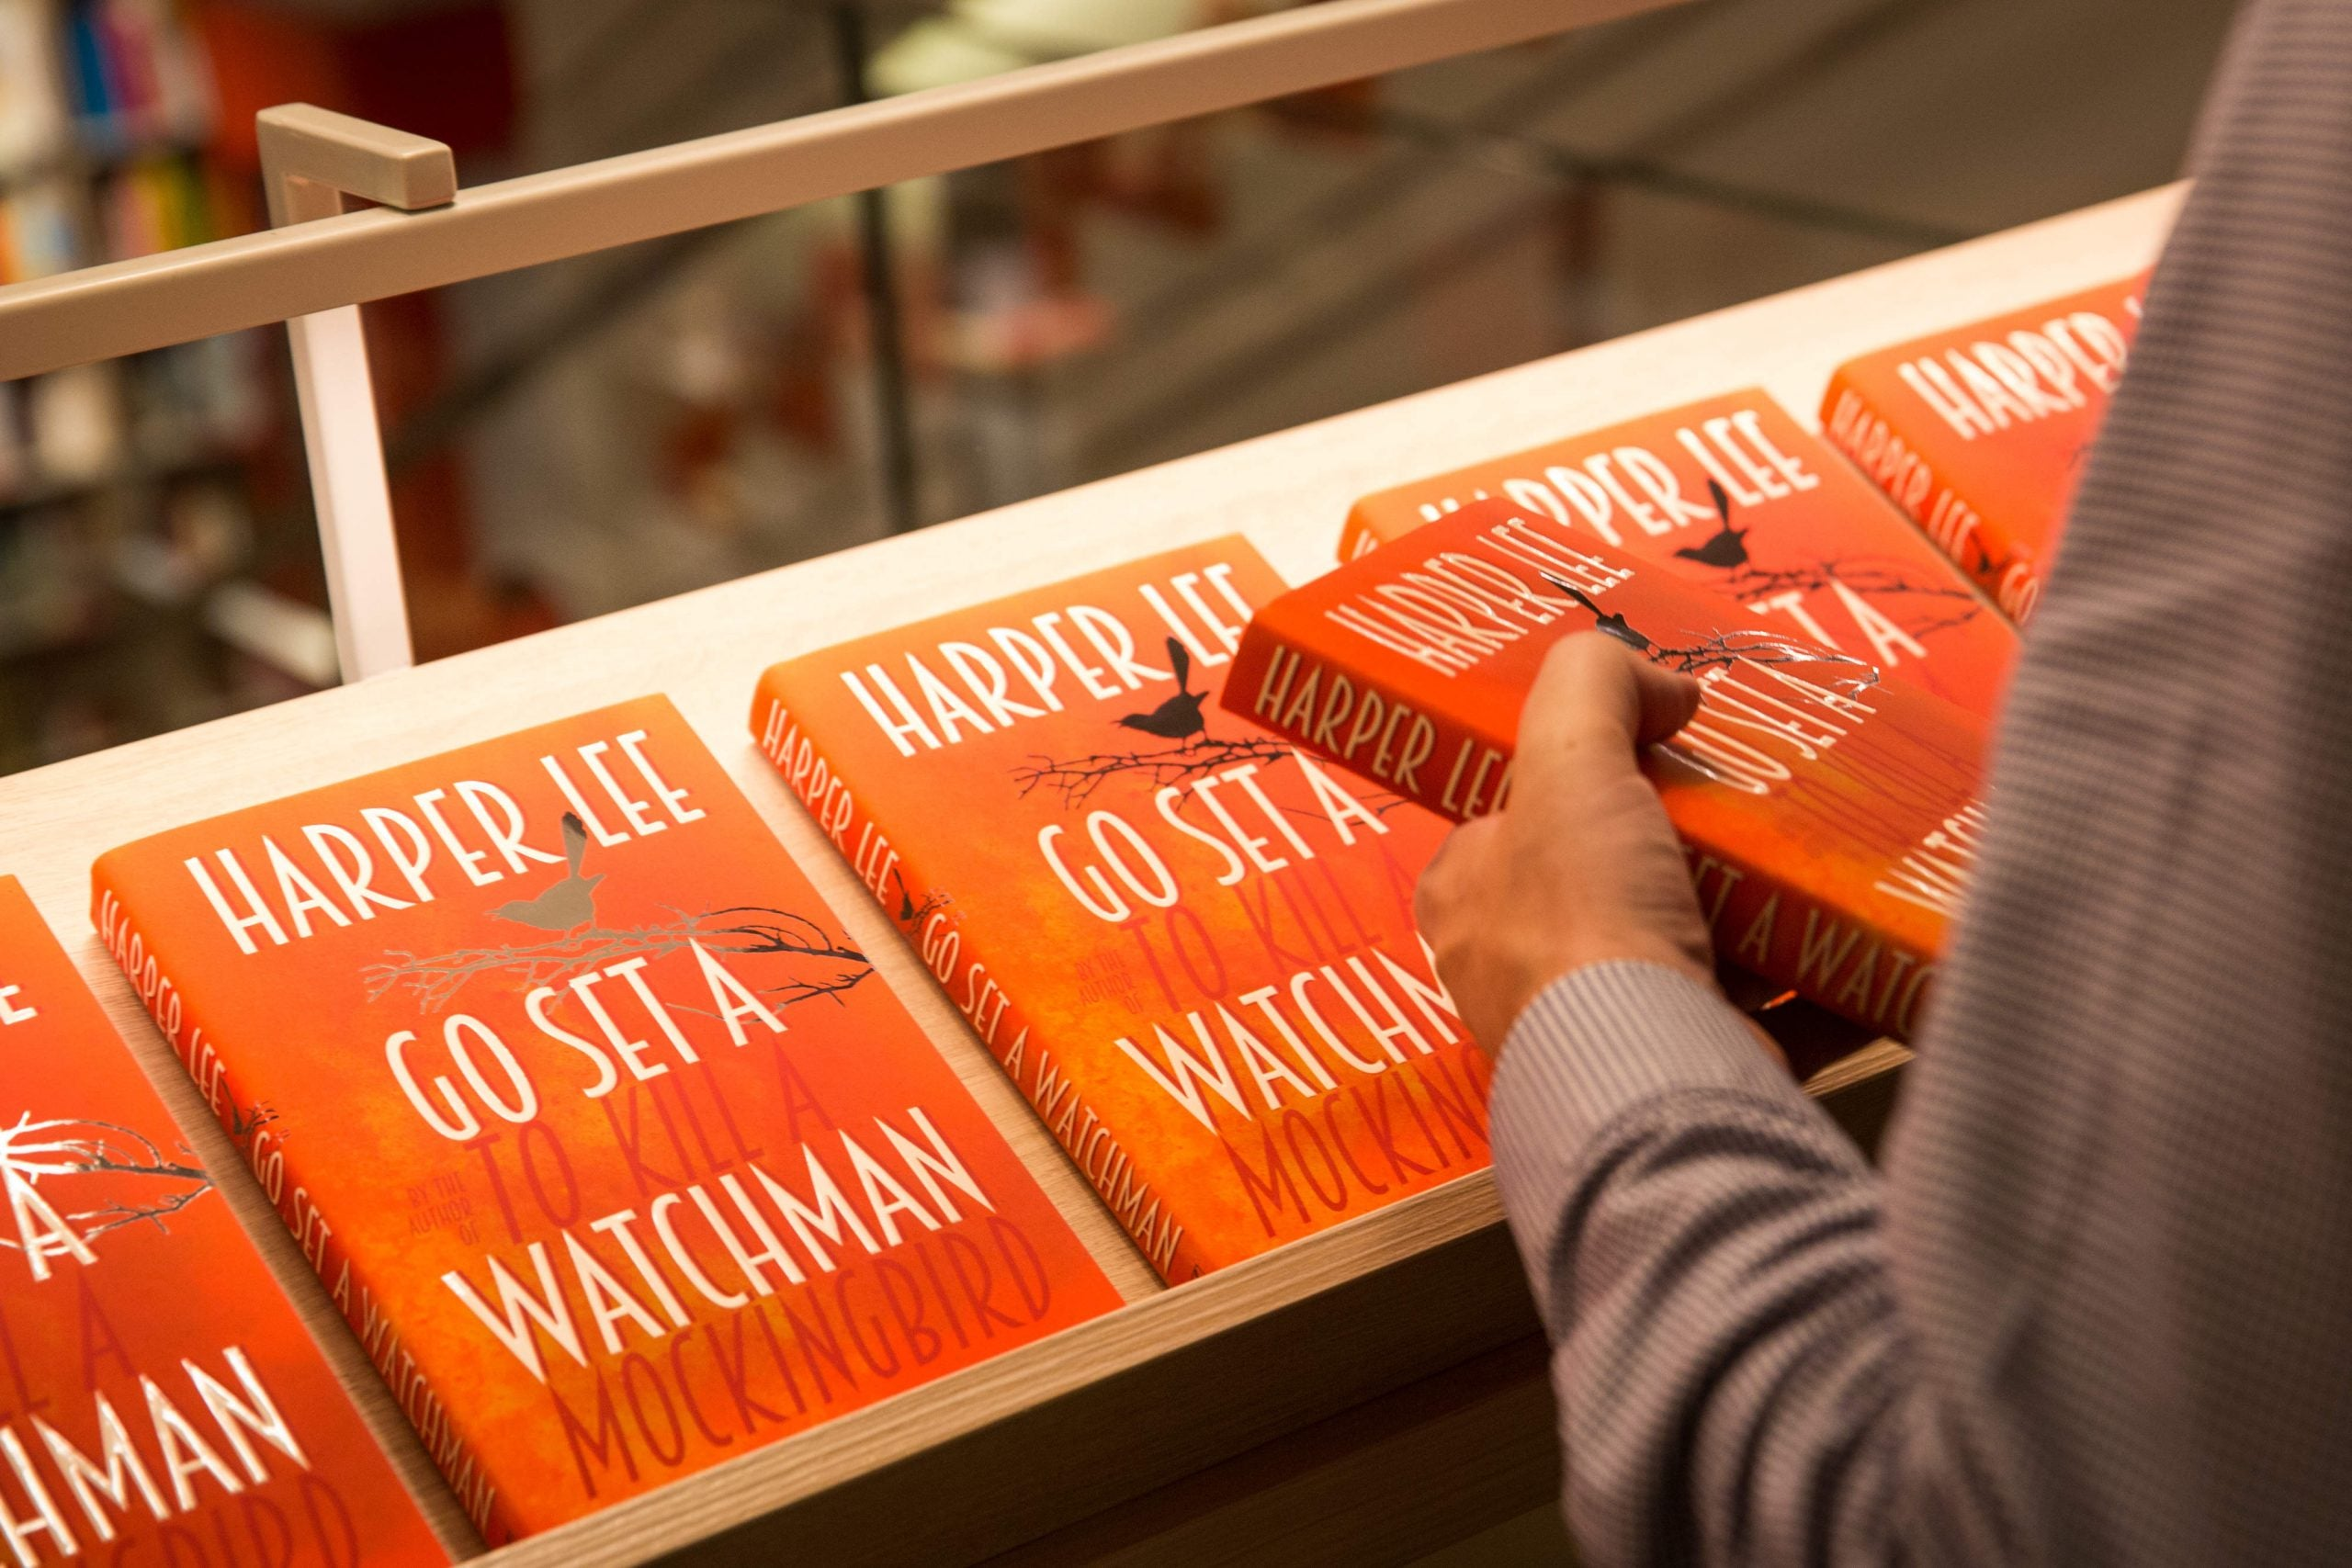 Why Go Set a Watchman is a much better novel than To Kill a Mockingbird